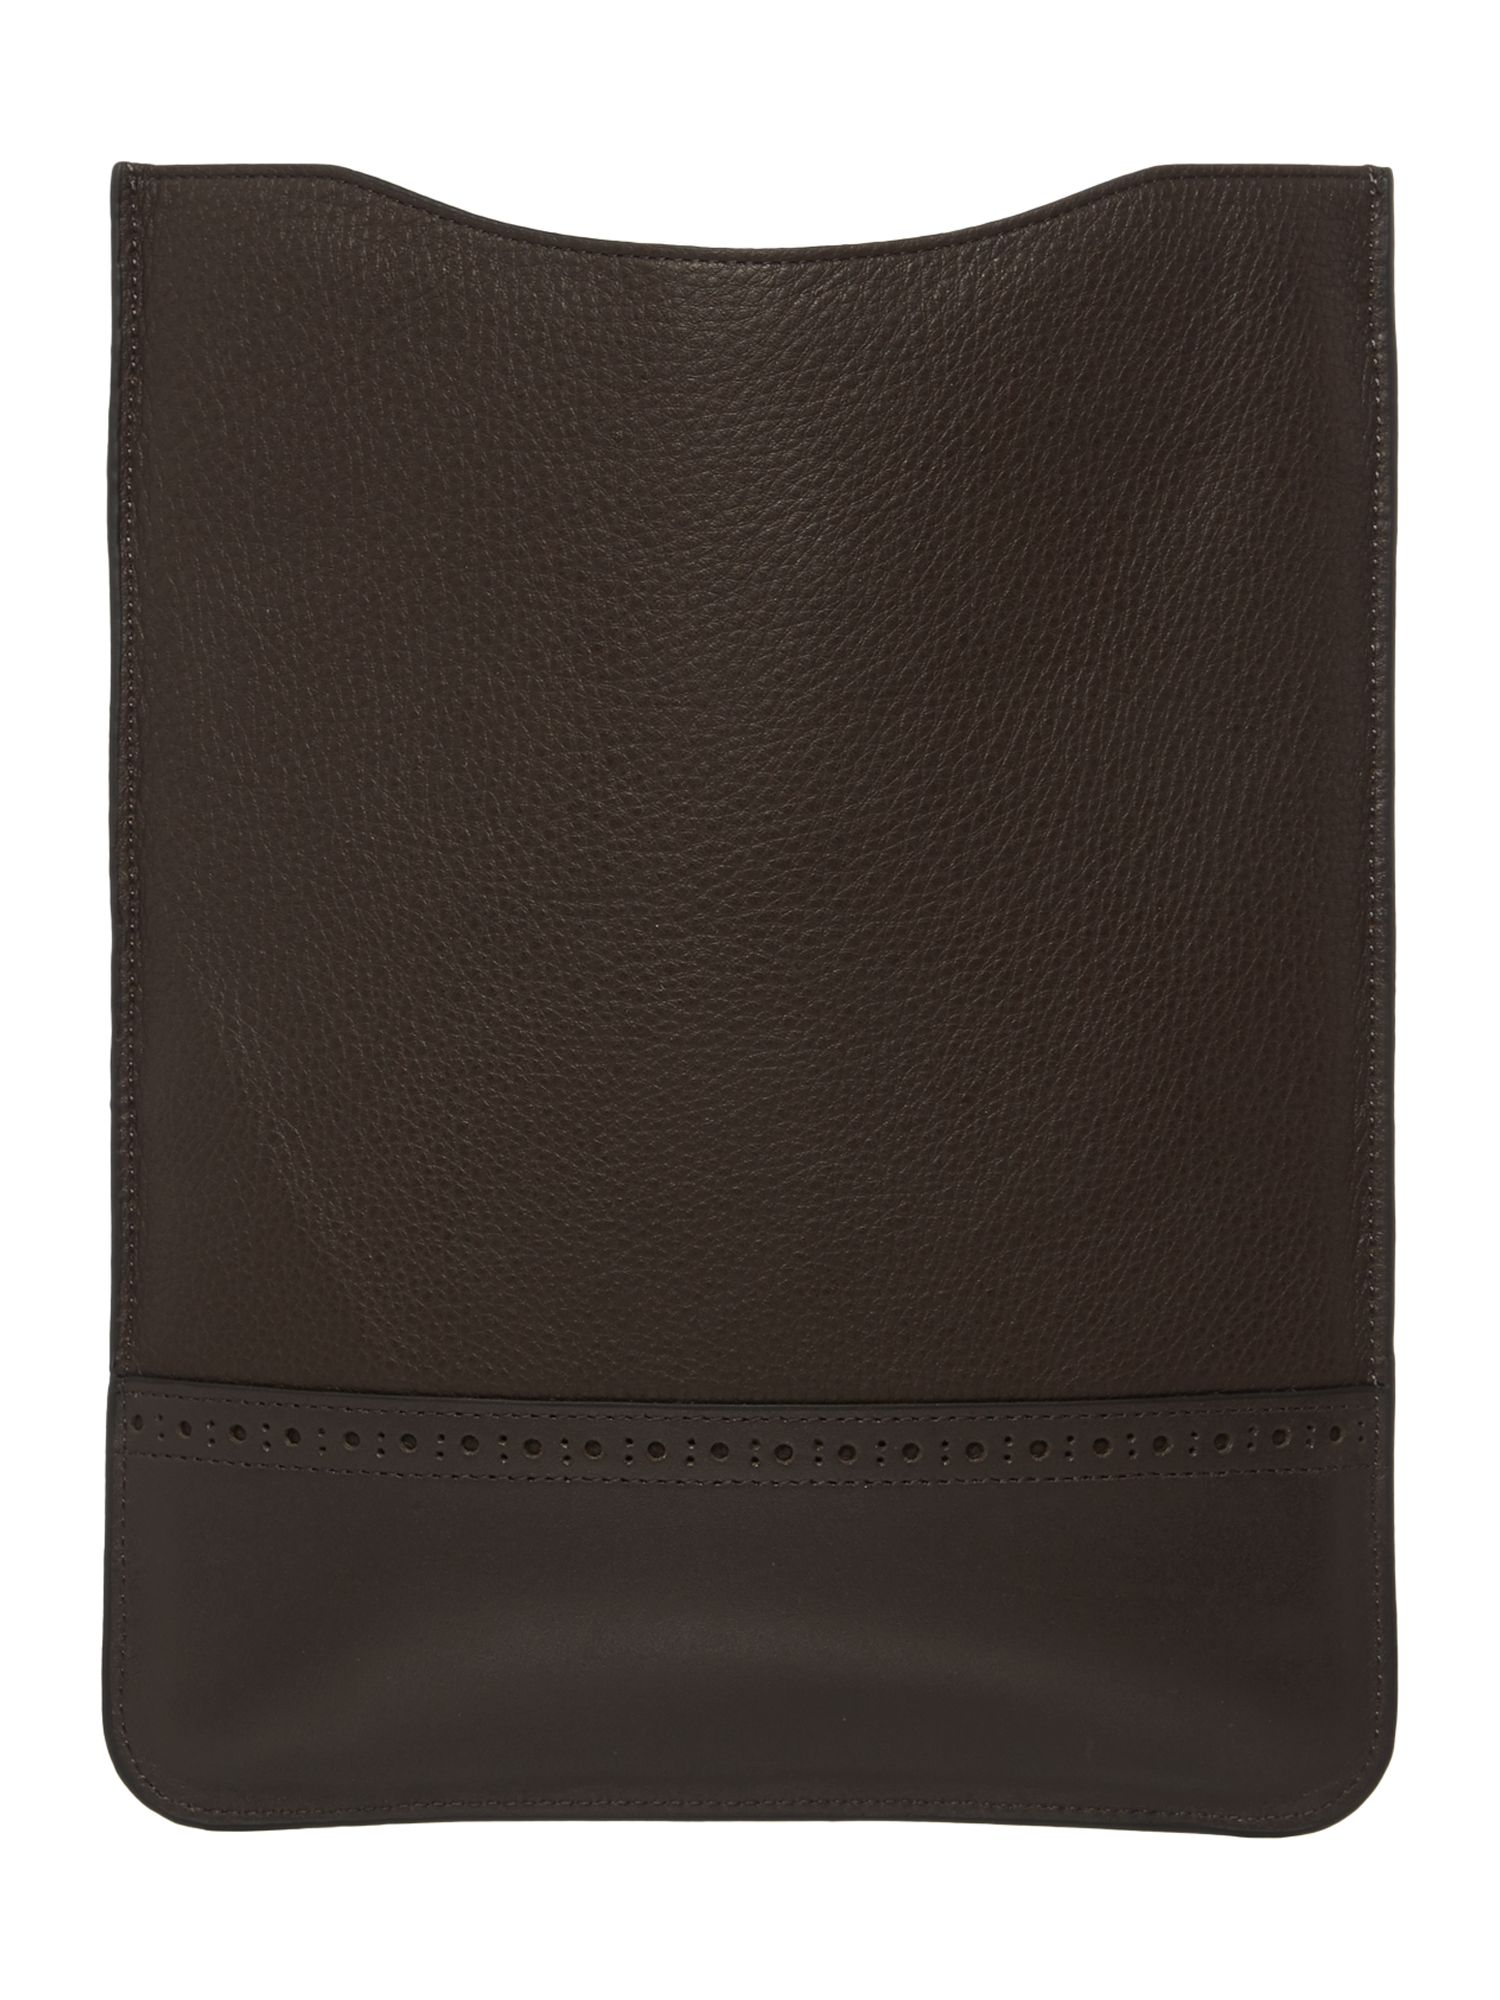 Broguing leather tablet case